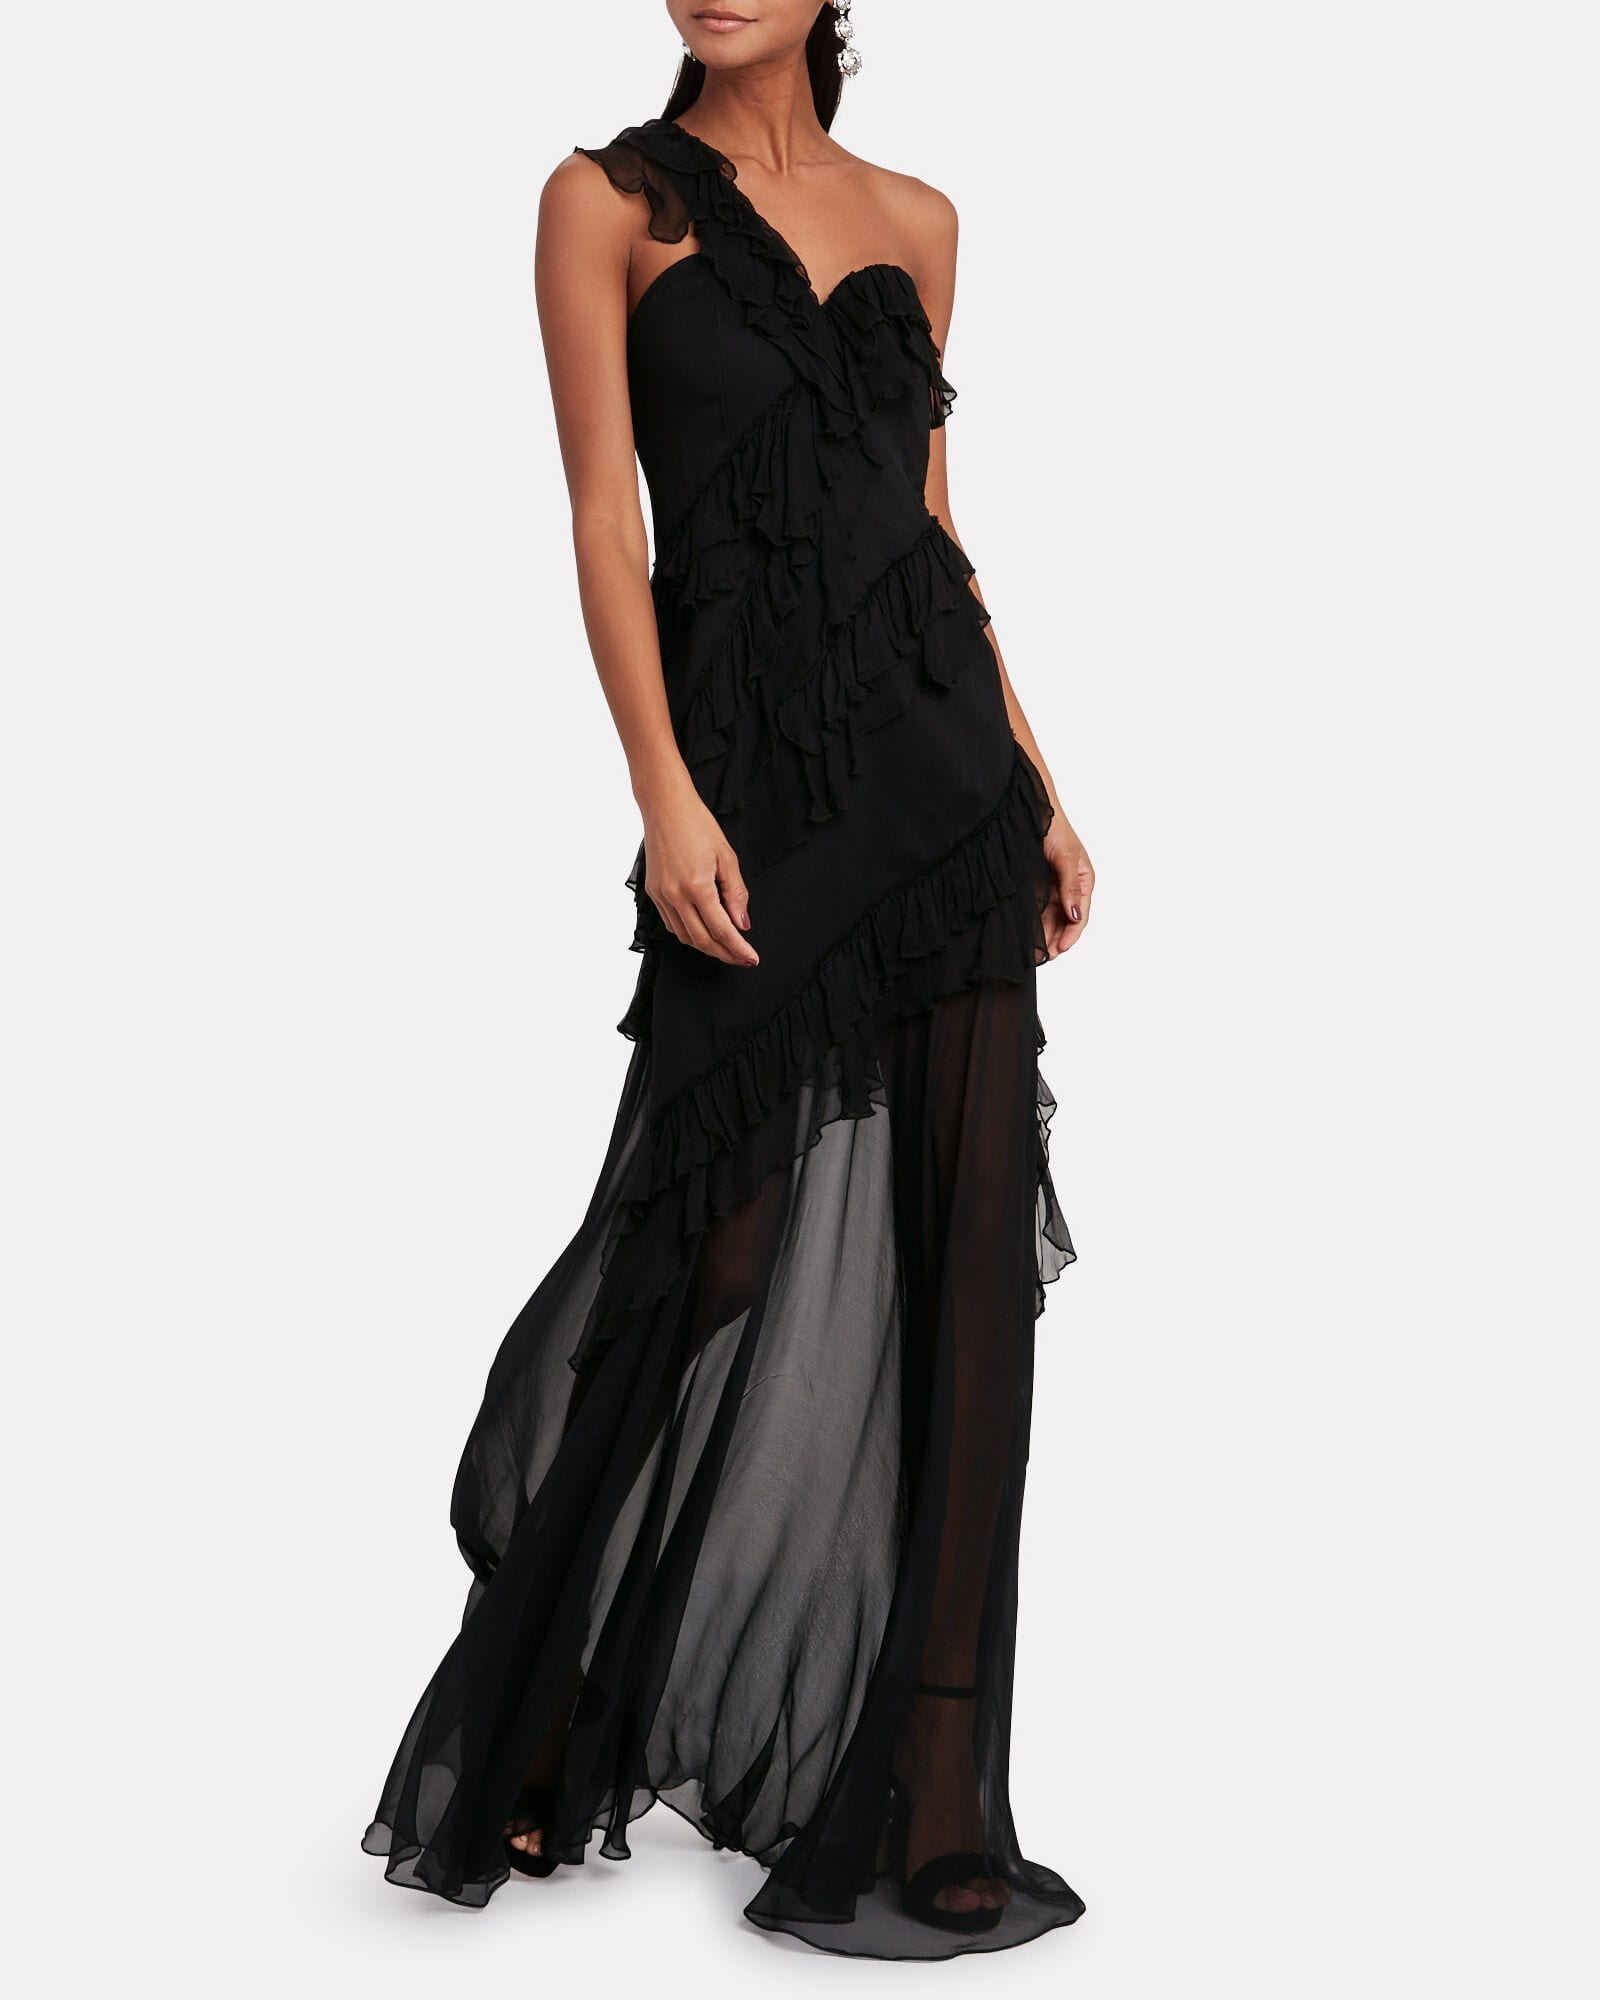 AMUR Harlow Crinkled Chiffon One-Shoulder Gown